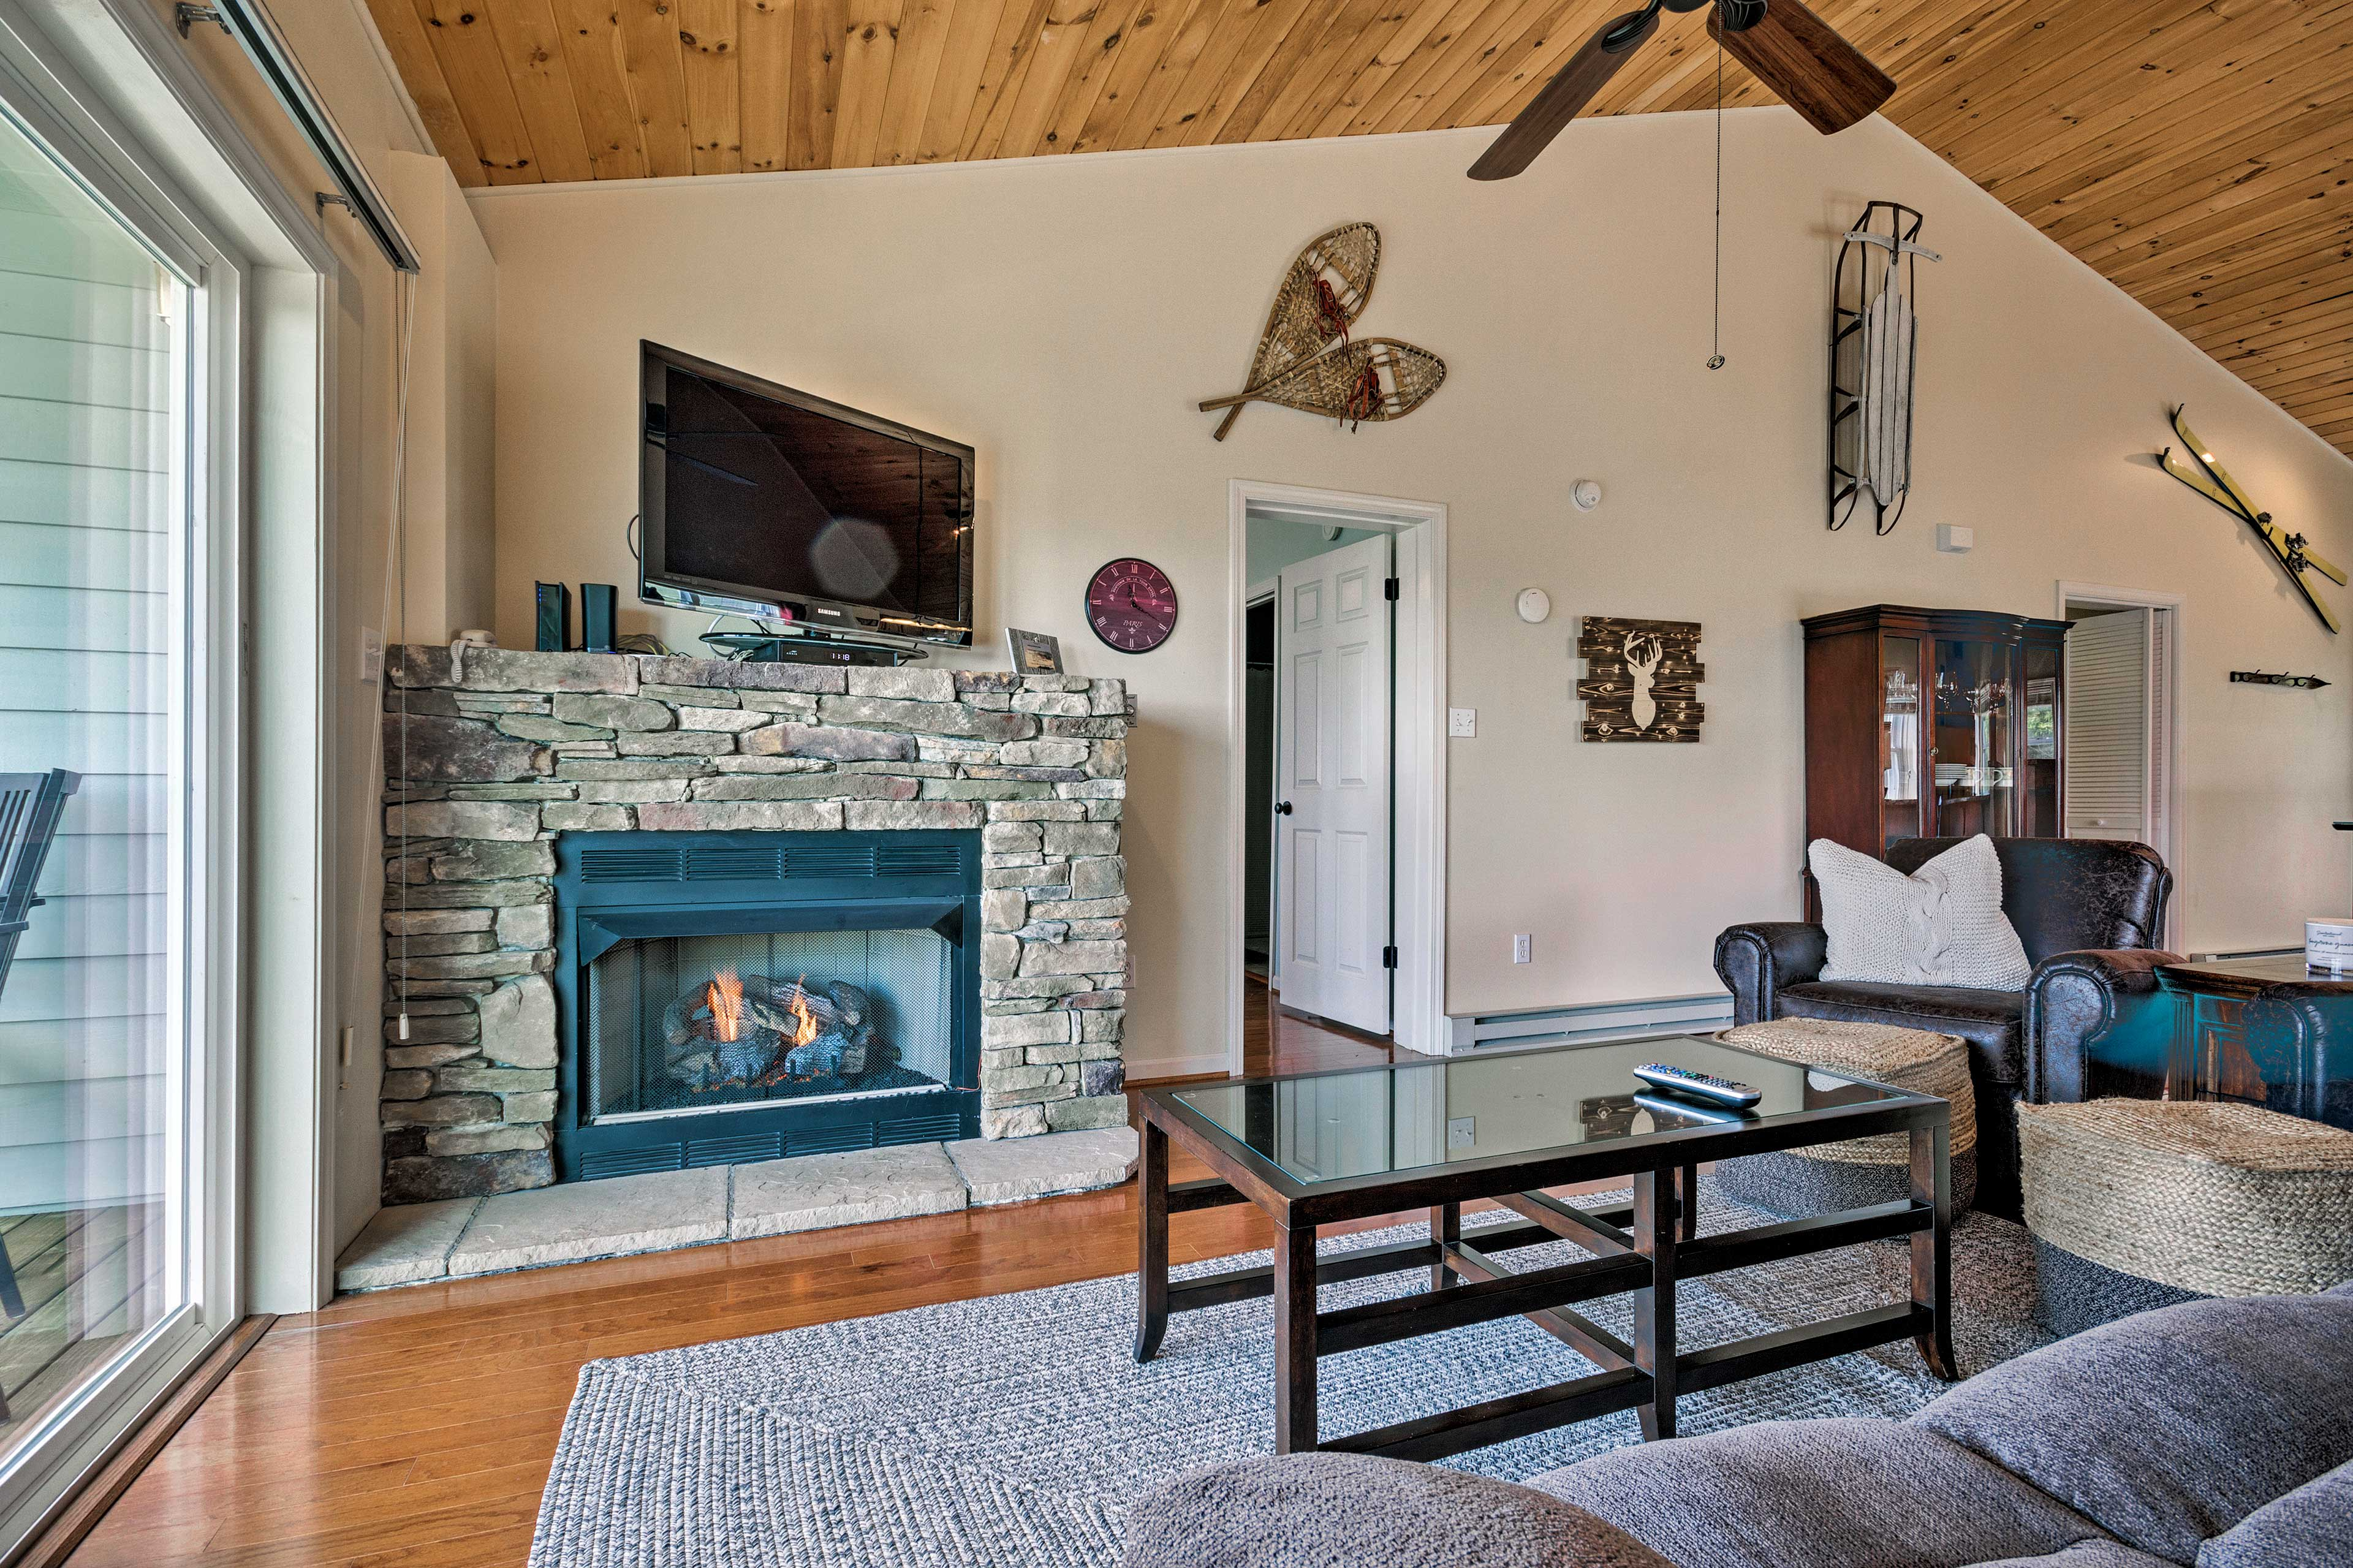 This second-floor unit features a fireplace and cable TV.